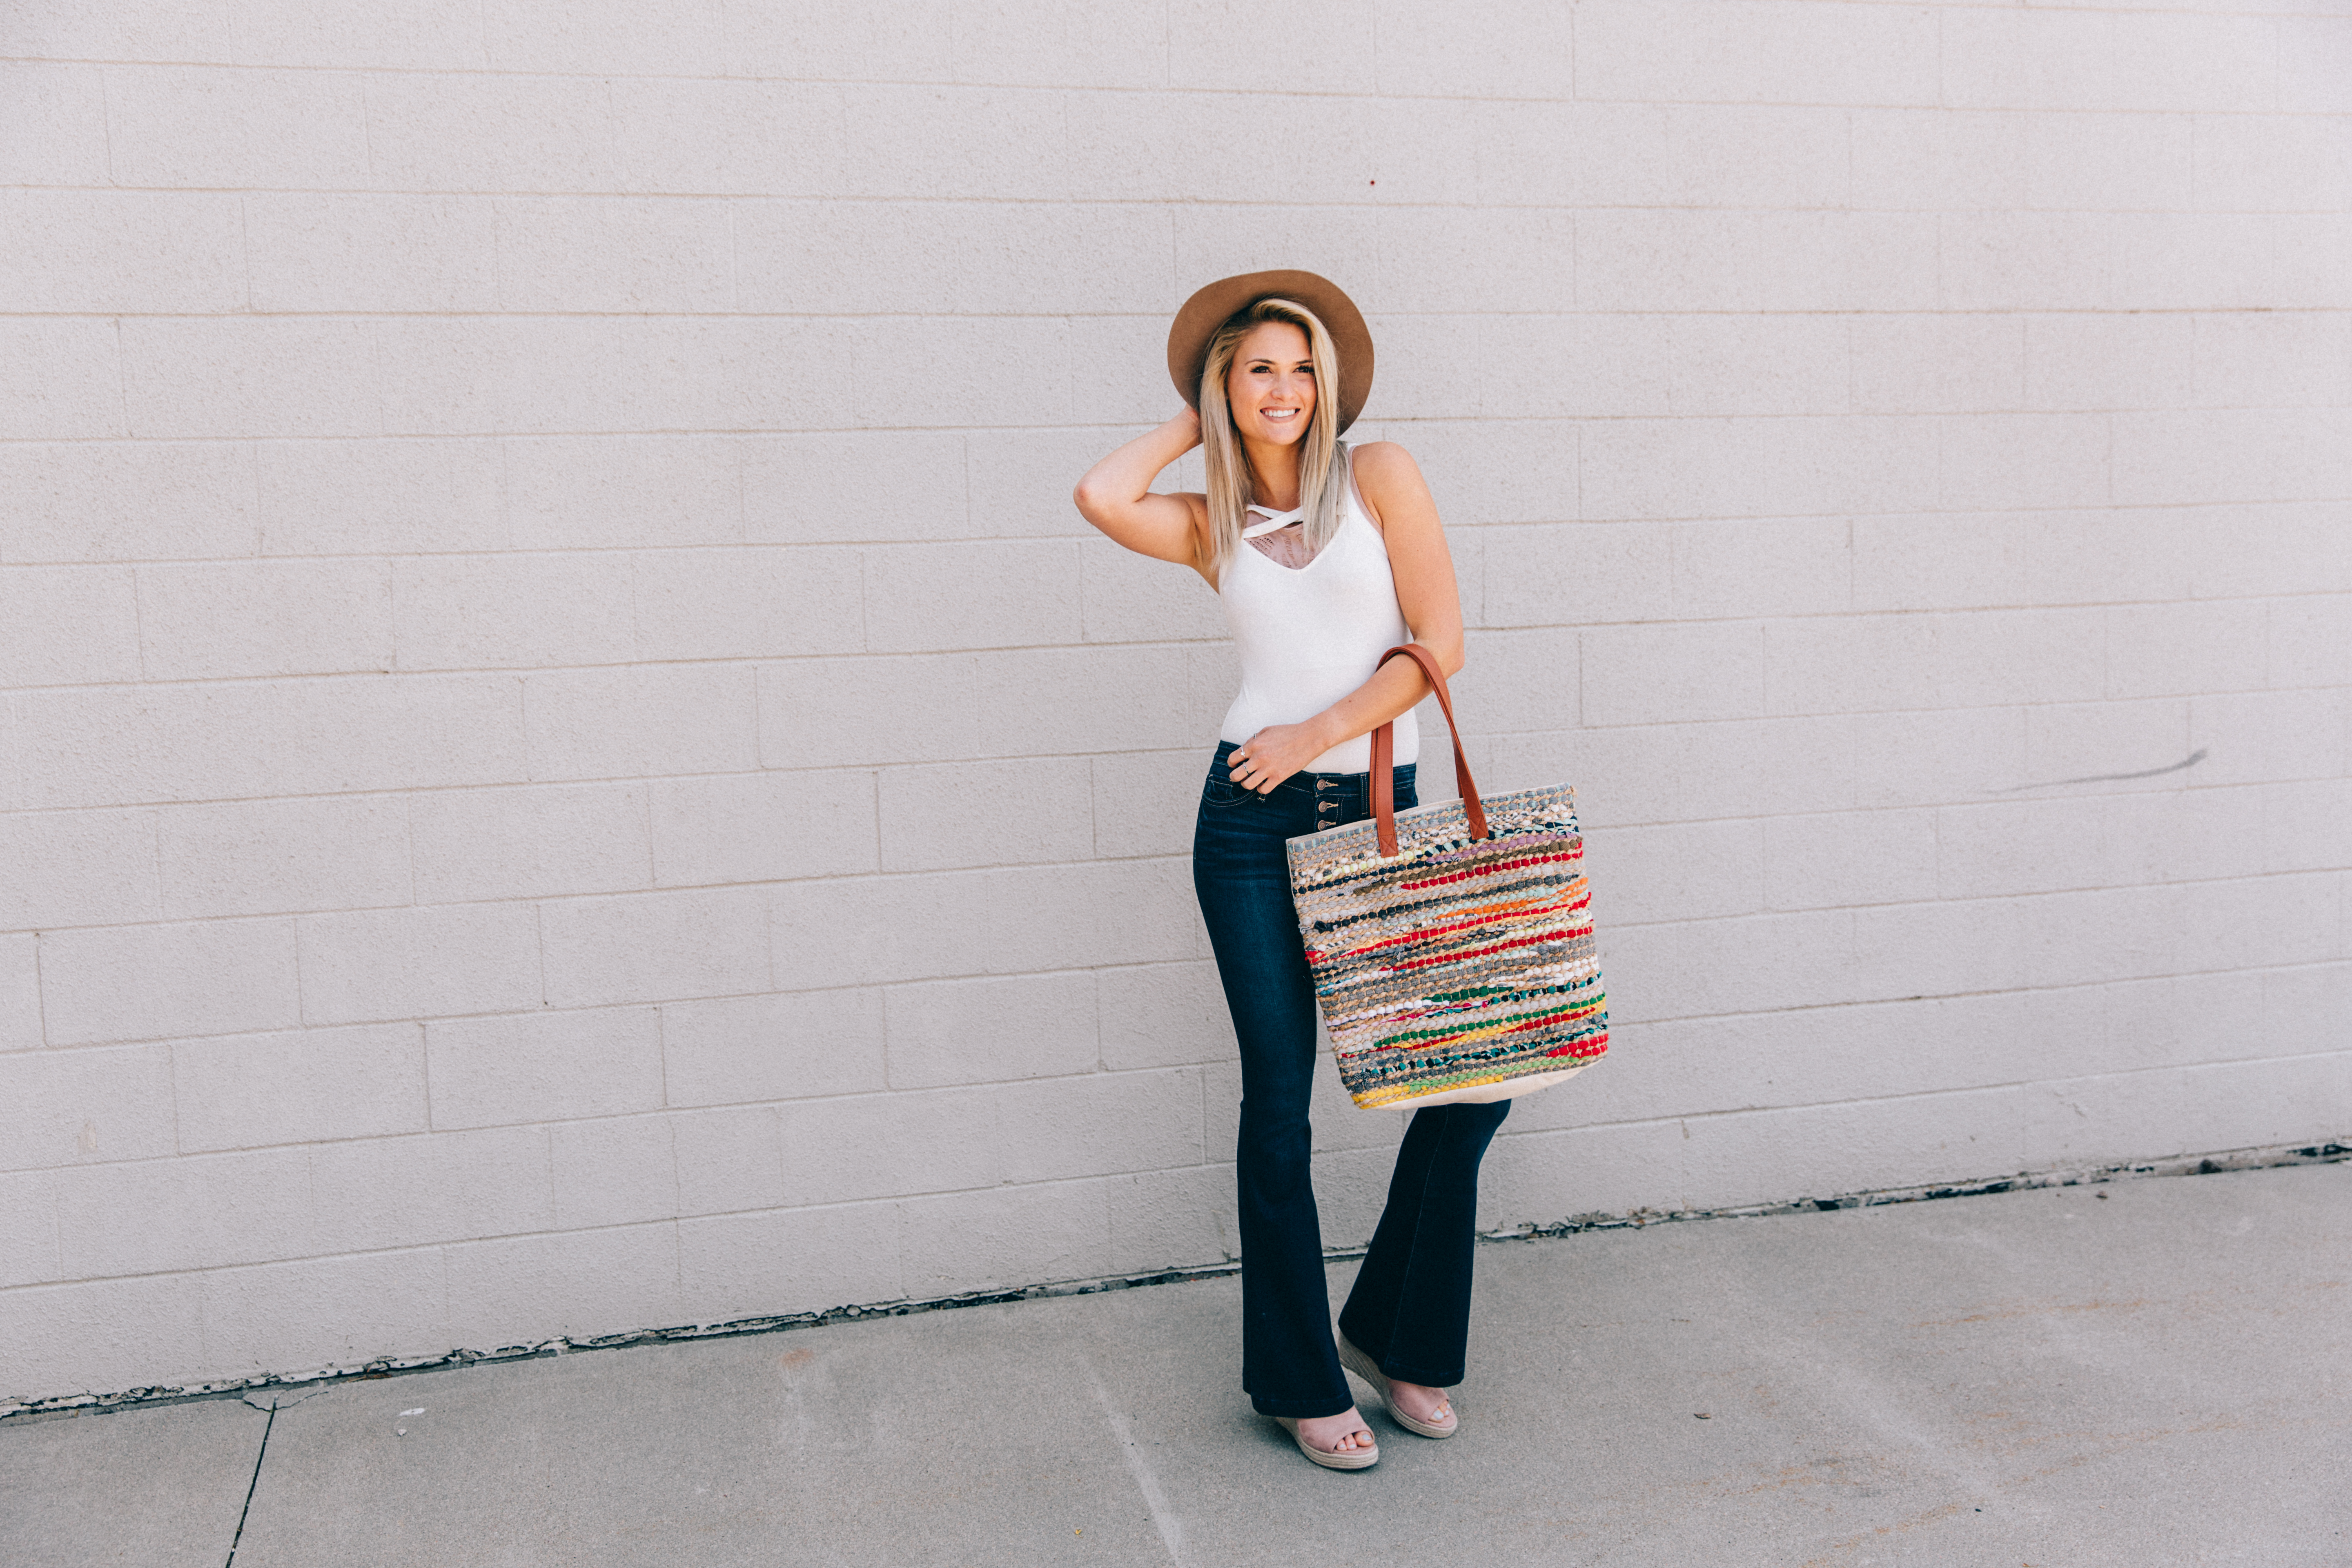 Classic jeans and white top look styled with accessories